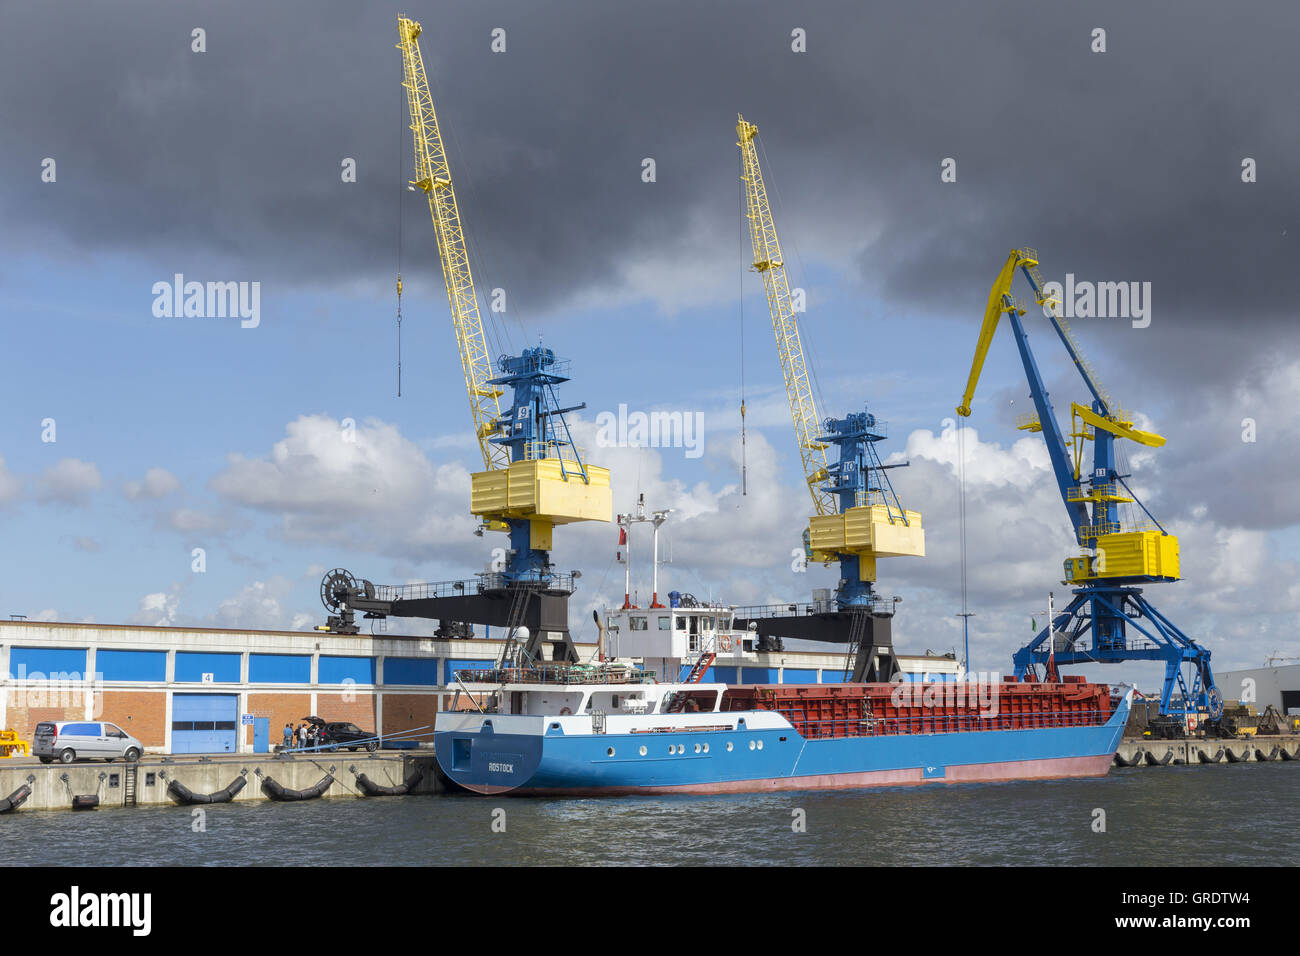 Three Large Industrial Cranes In The Port Of Wismar Mecklenburg-Vorpommern - Stock Image